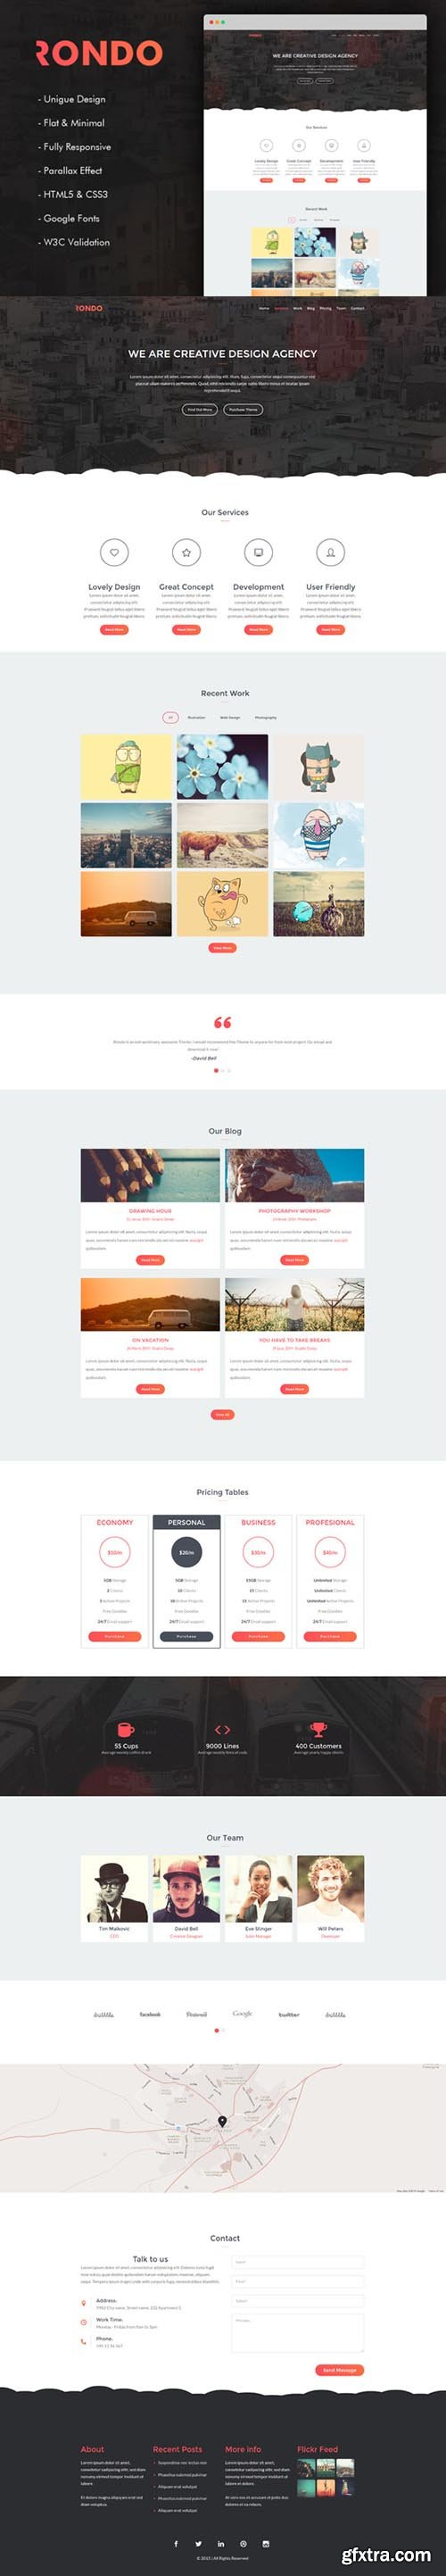 Rondo - Responsive One Page Template - CM 606289